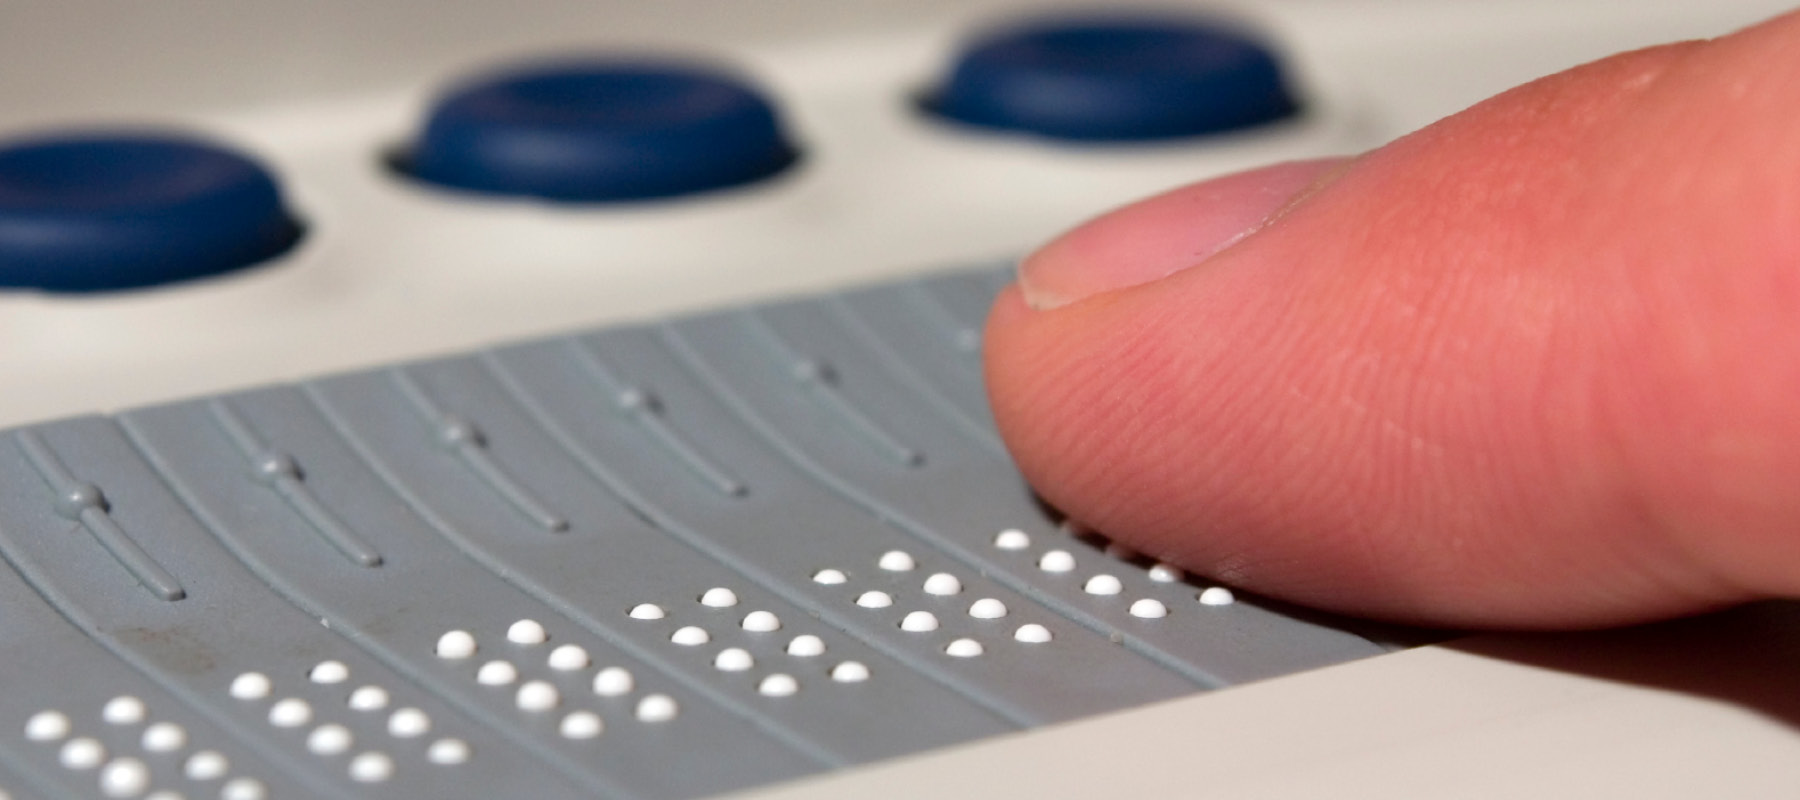 Finger on braille tool